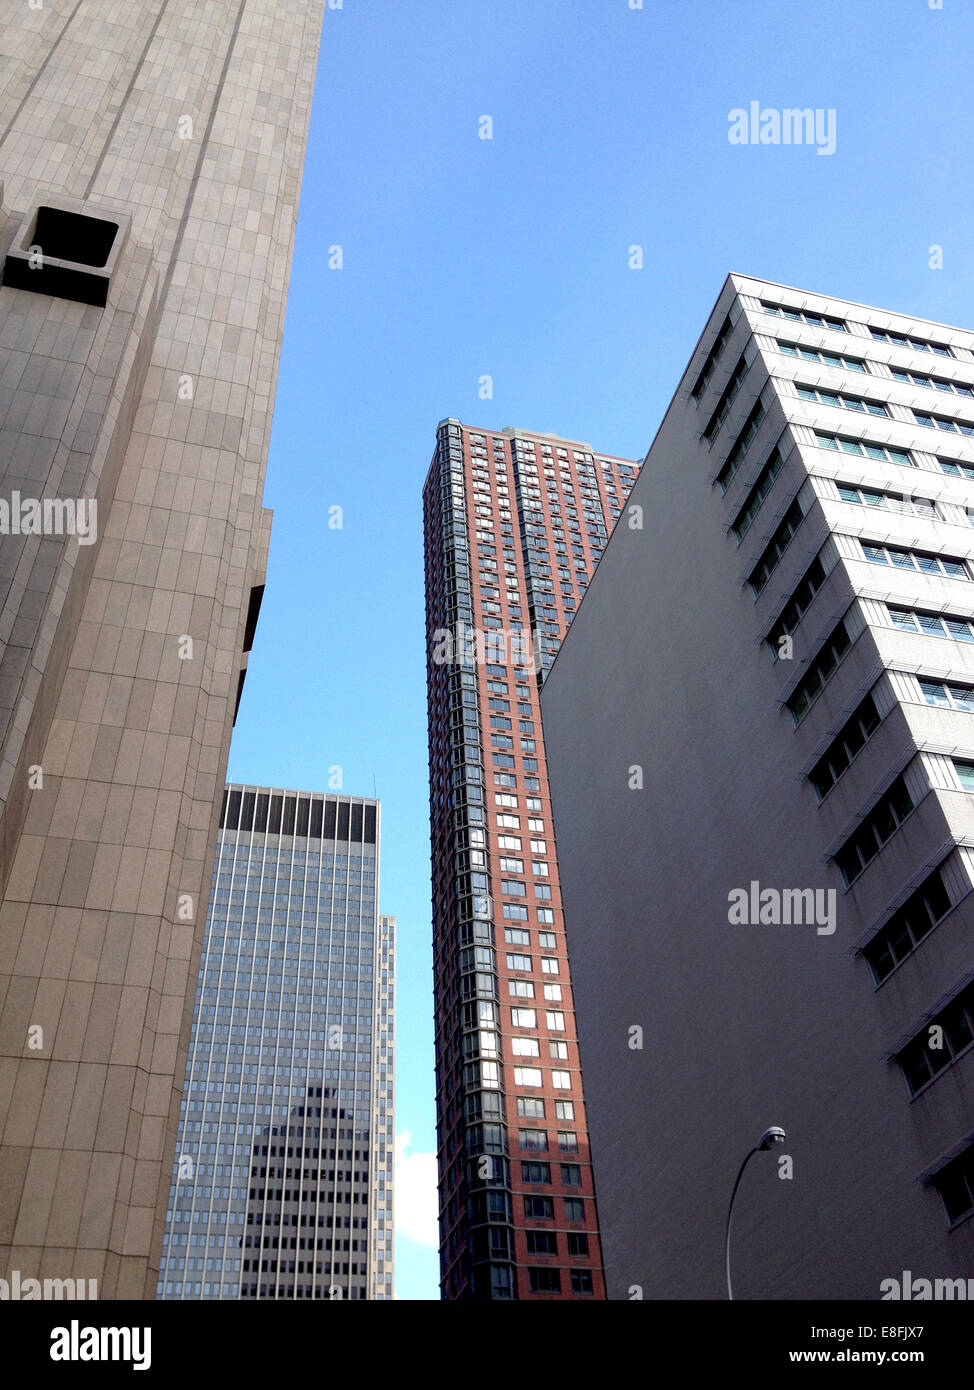 USA, New York State, New York City, City buildings seen from below - Stock Image